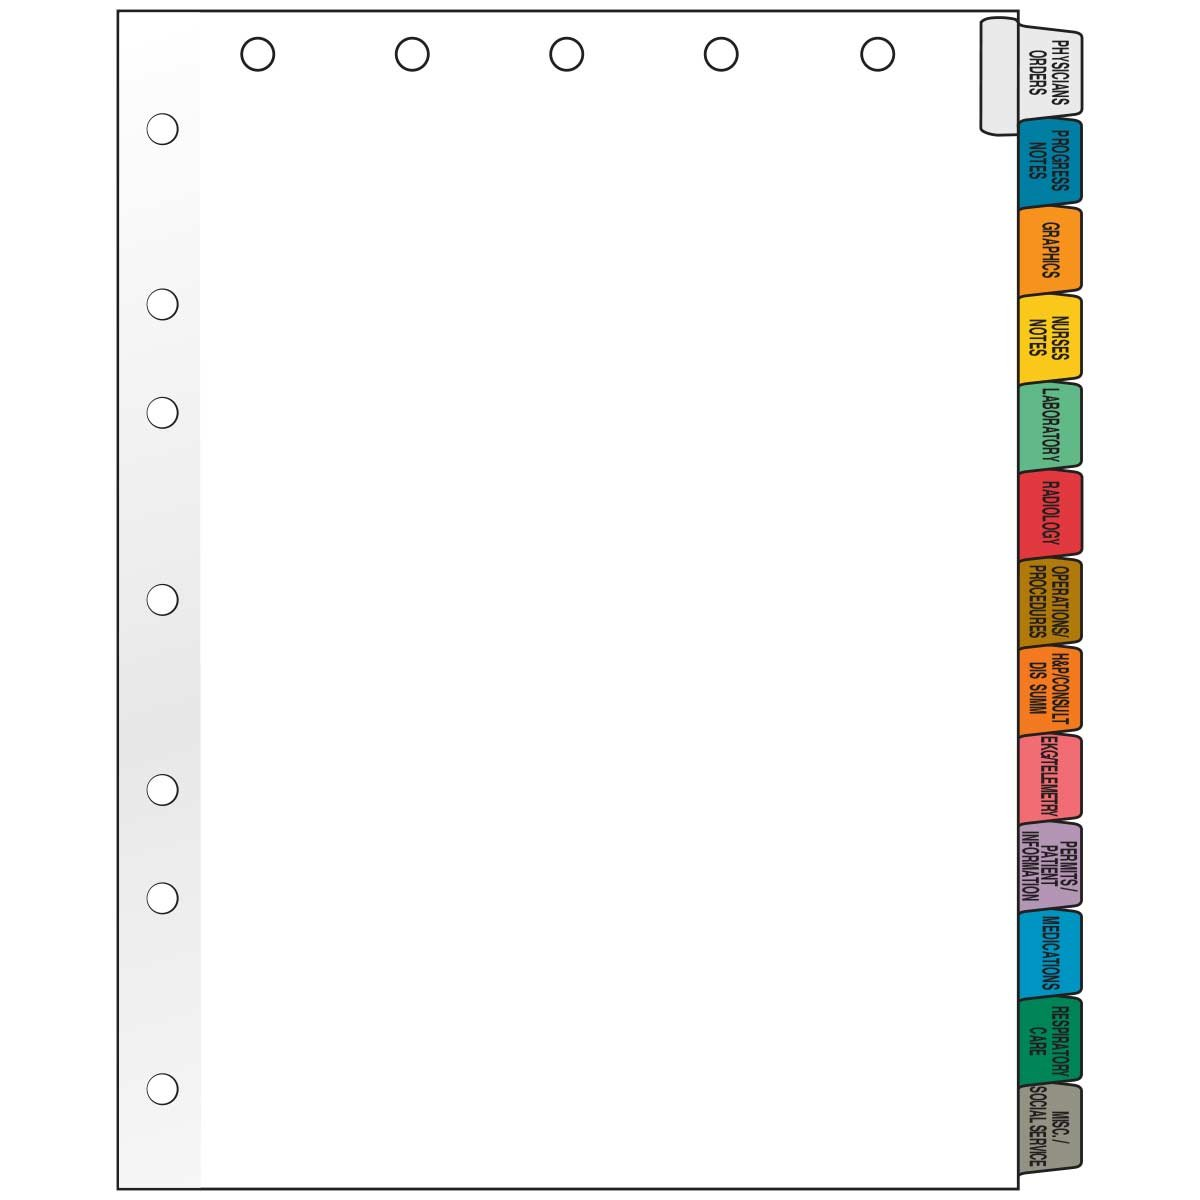 Filepro CD13 100# White Side Tab Position Chart Divider, Mylar Reinforced Tab, 13 Titles, 11'' Length x 8.5'' Width (Box of 23)